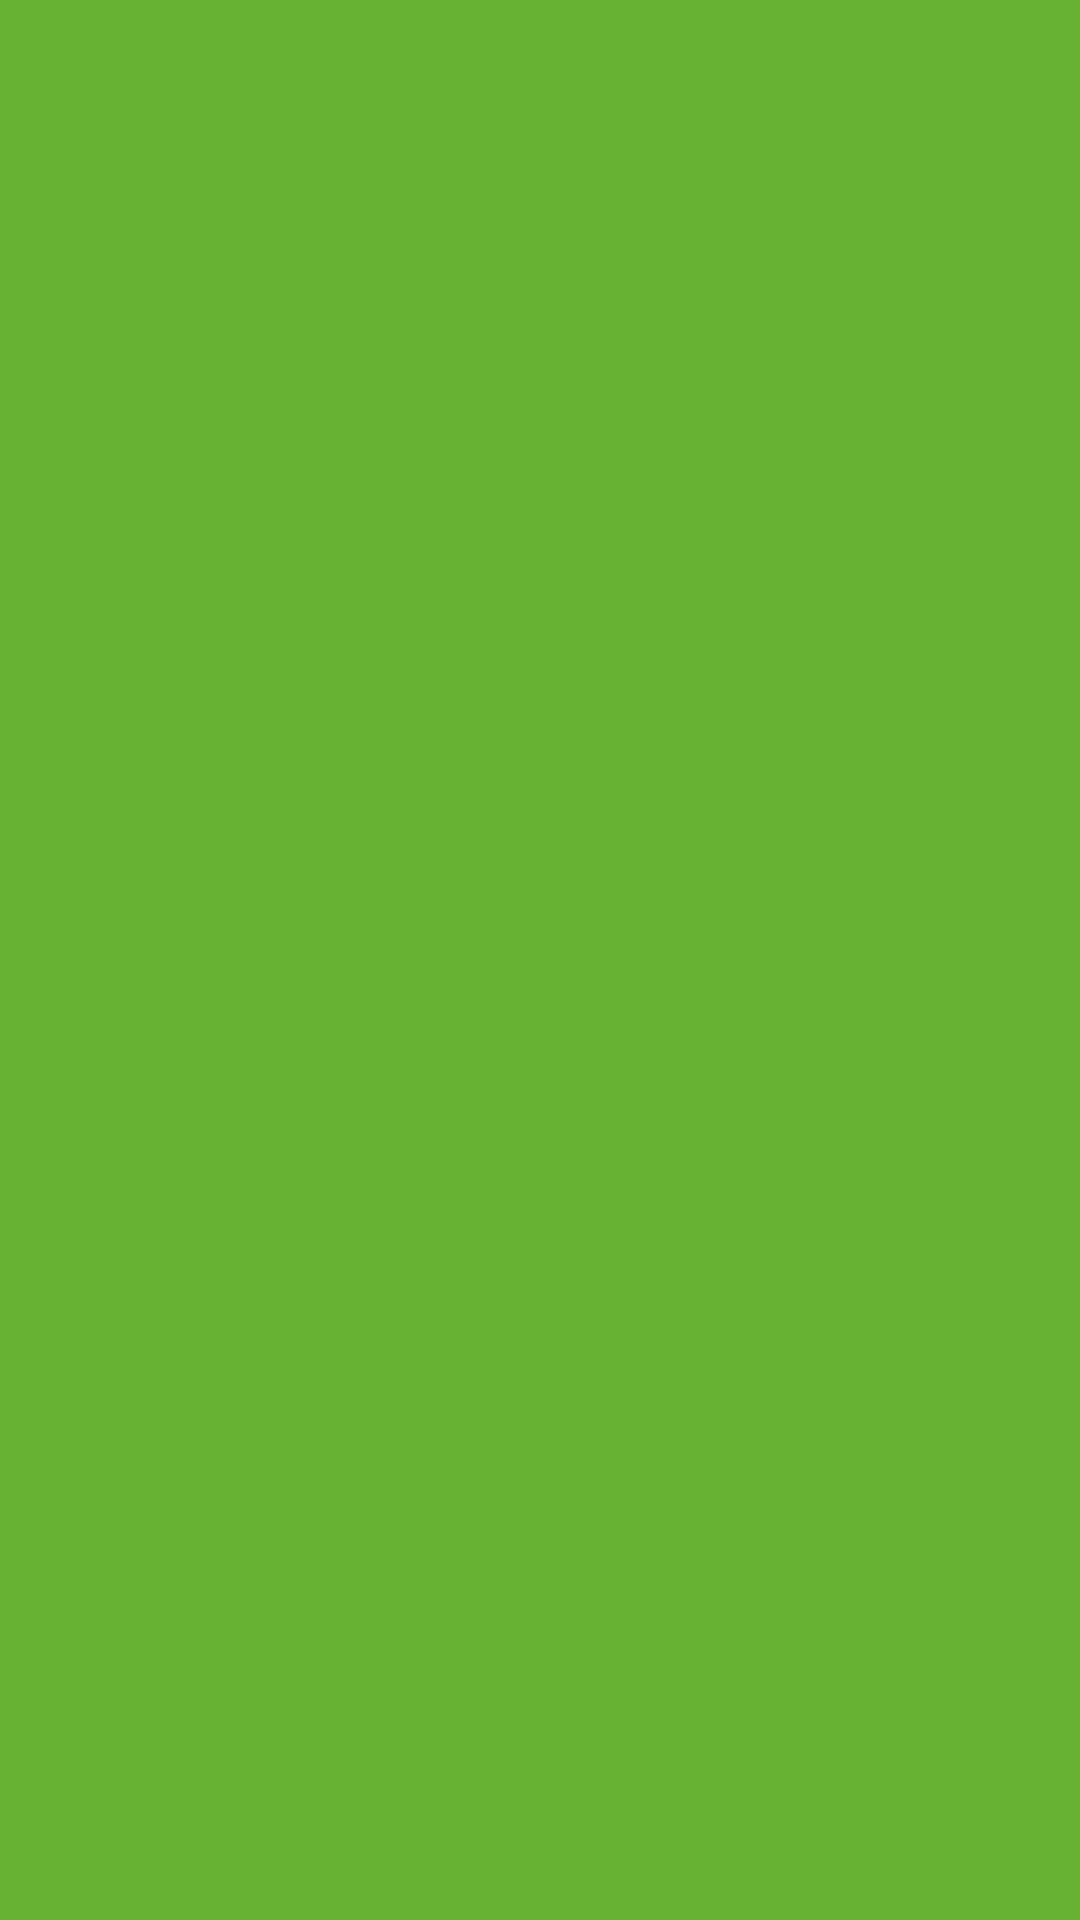 1080x1920 Green RYB Solid Color Background